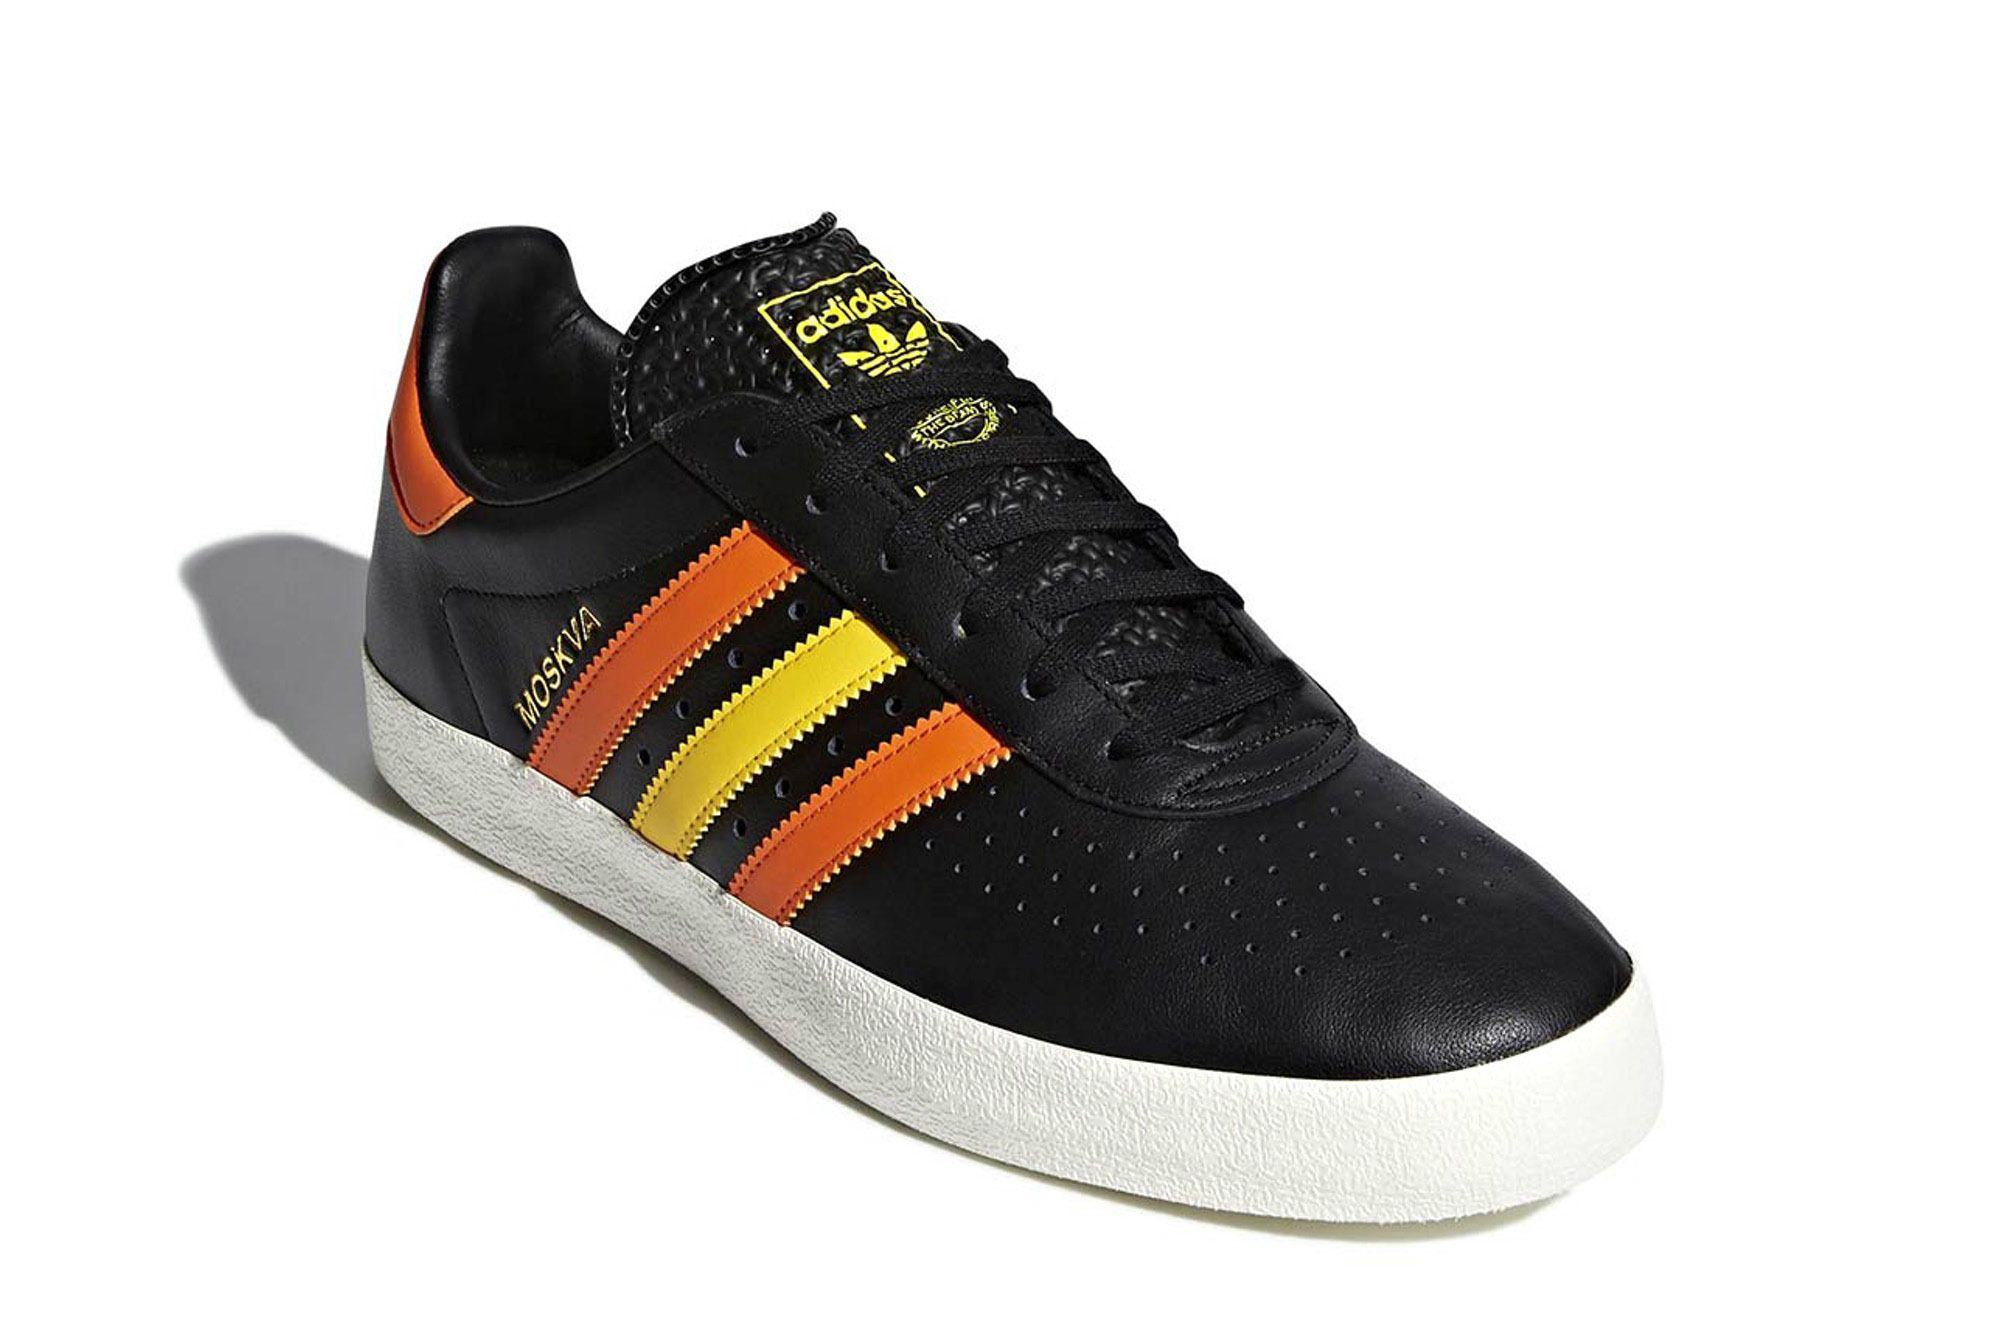 Adidas 350 Moscow Black White Leather Release 9 Sneaker Freaker